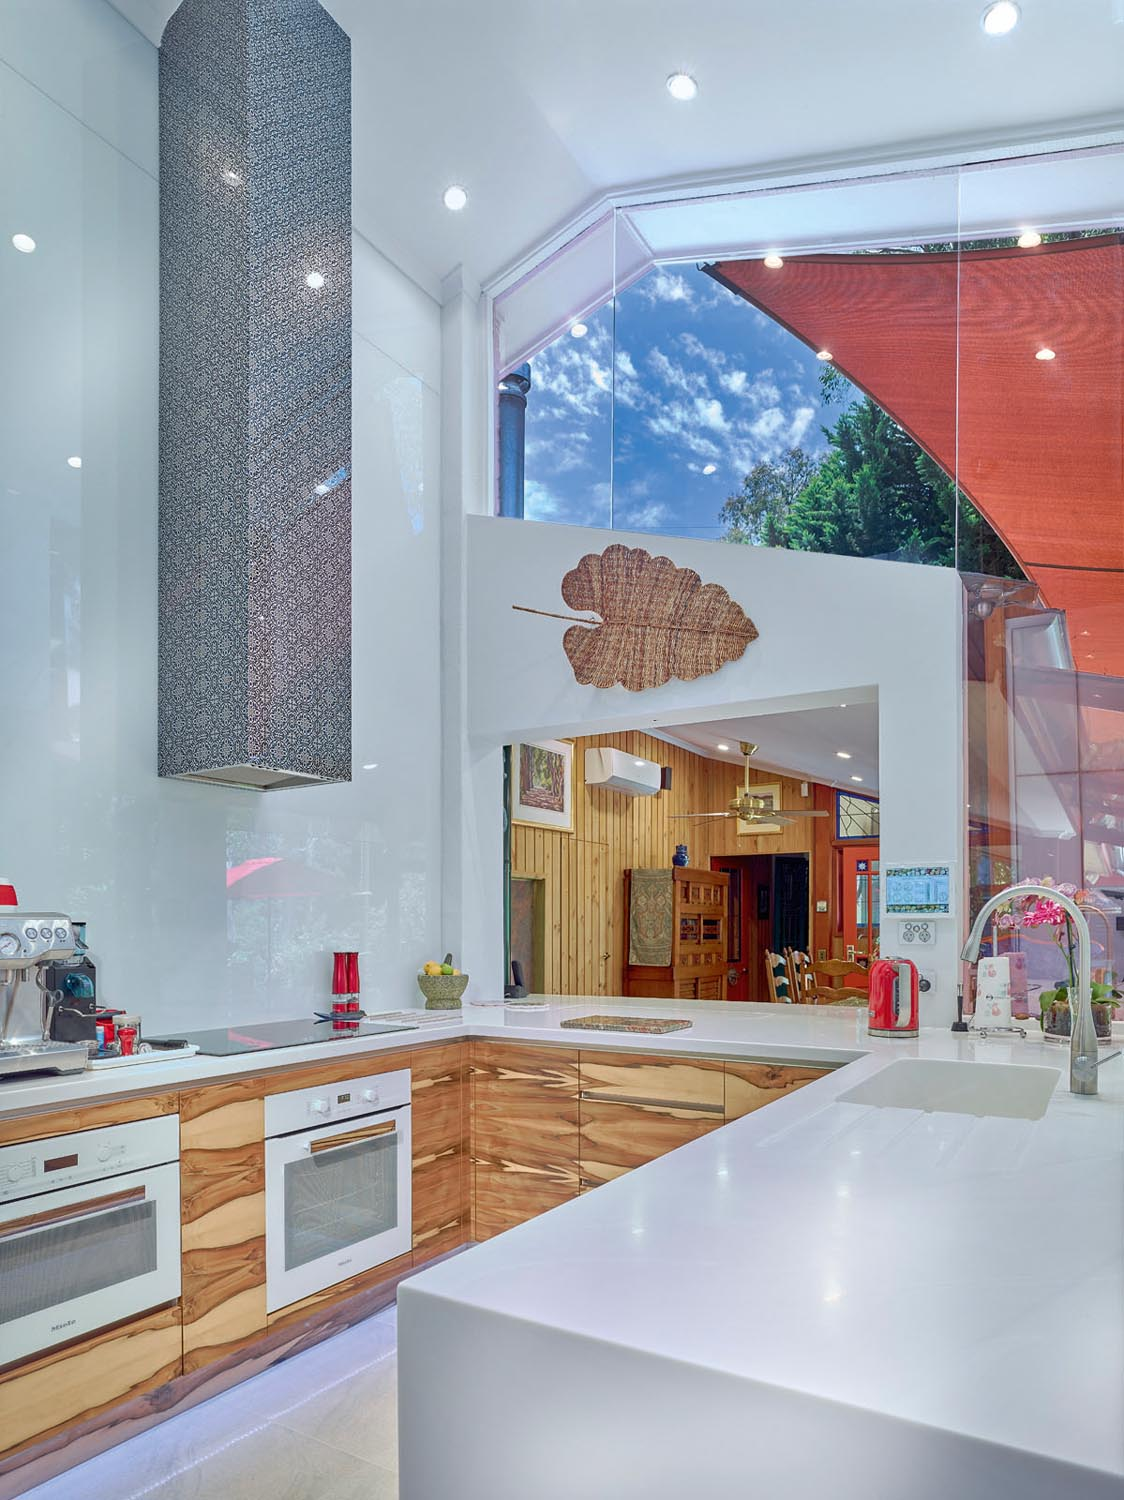 One of a kind: a modern kitchen - Completehome